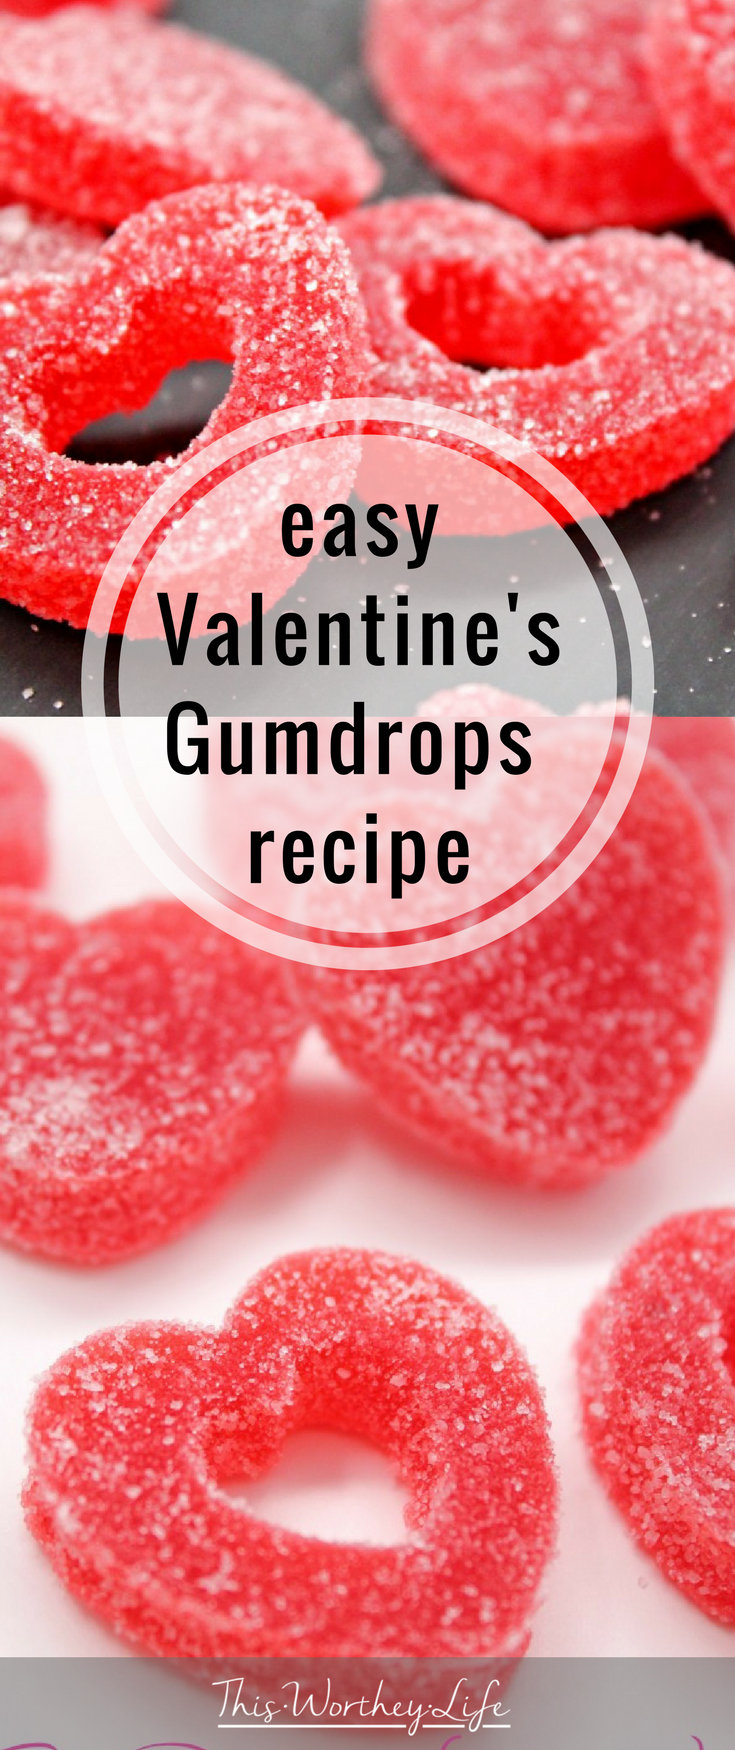 If you need a cute and easy Valentine's Day recipe, check out this amazing homemade Gumdrops Recipe.